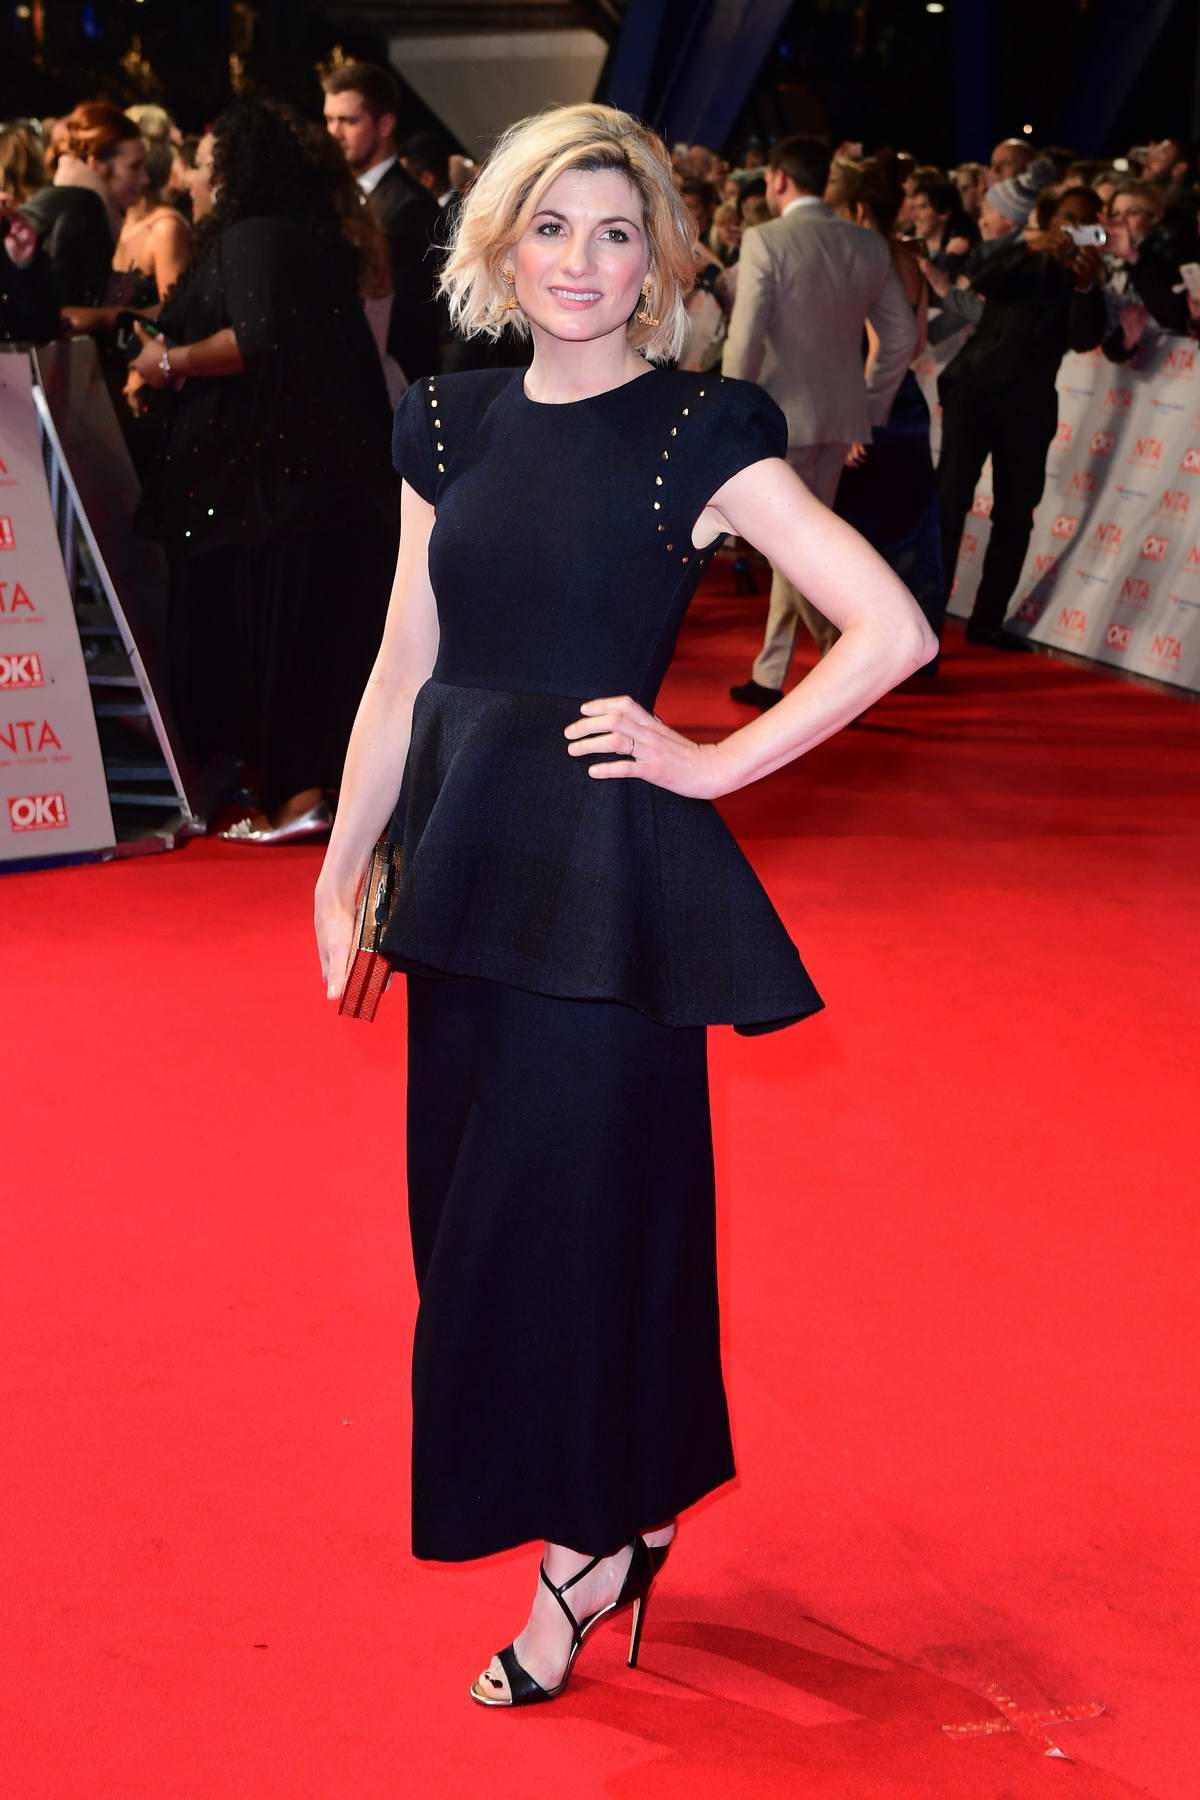 Jodie Whittaker attends National Television Awards at The O2 Arena in London